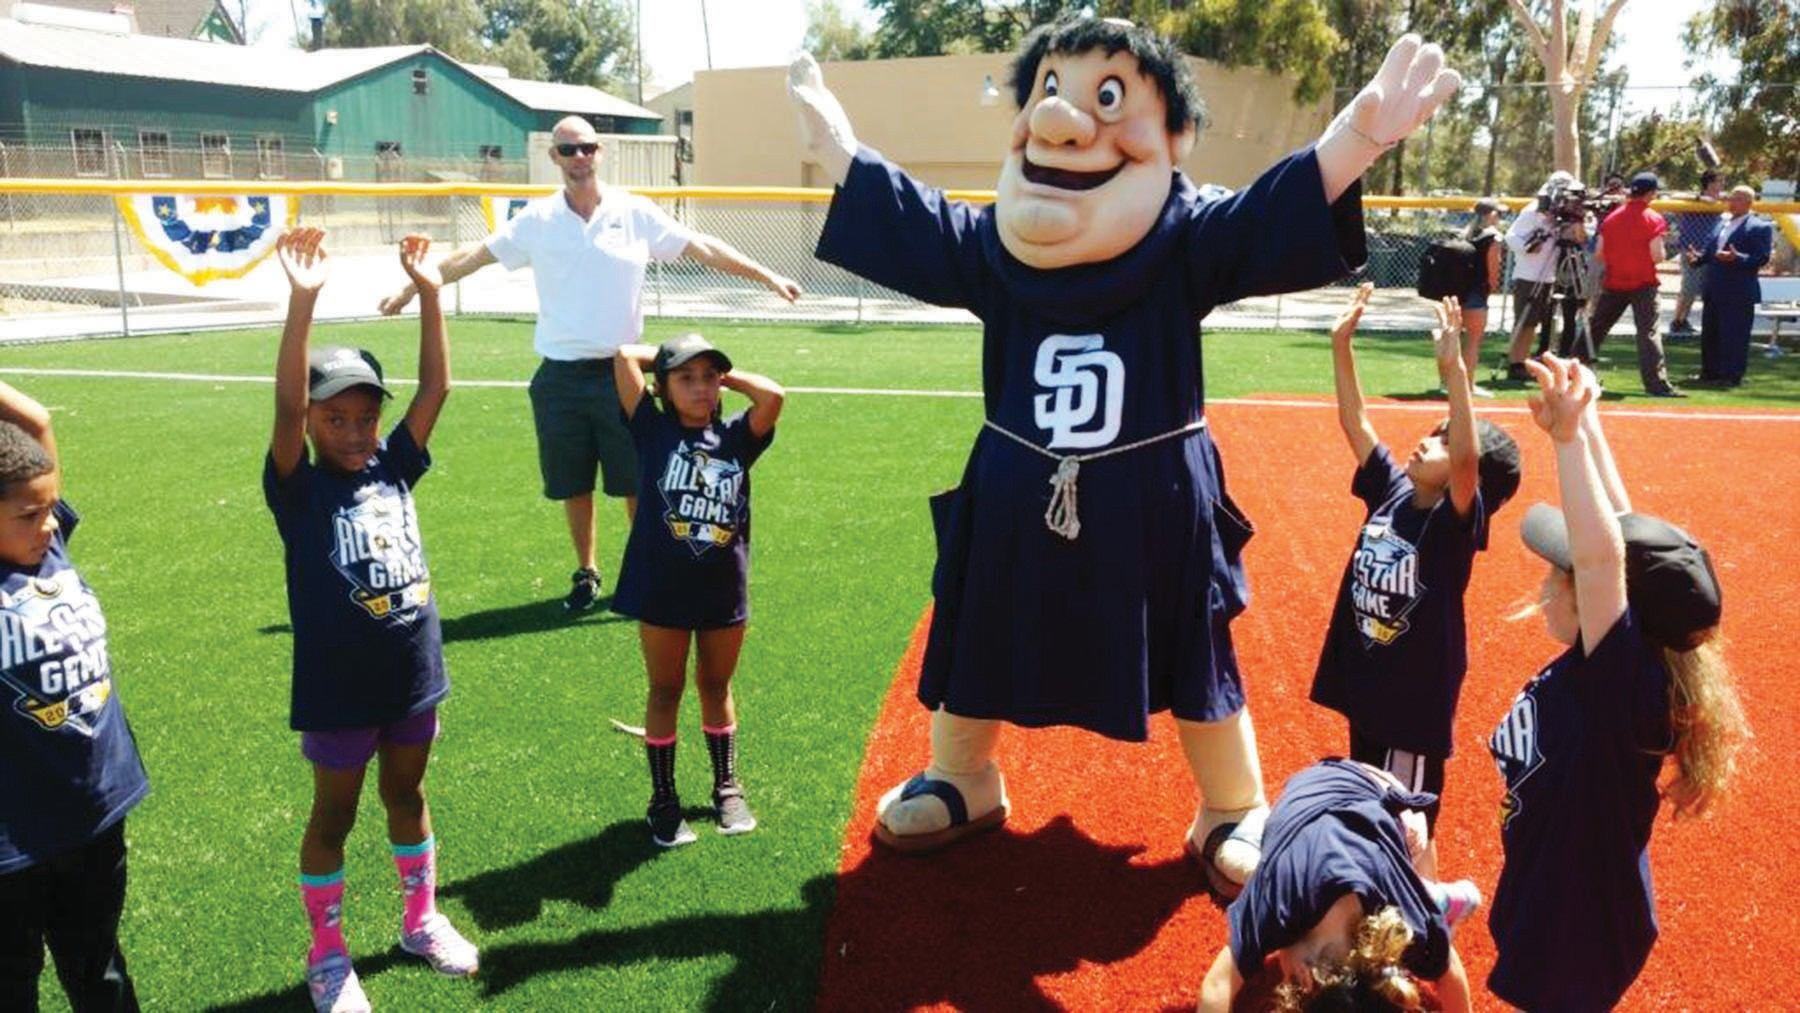 The Padres mascot leads some Boys & Girls Club members in calisthenics.